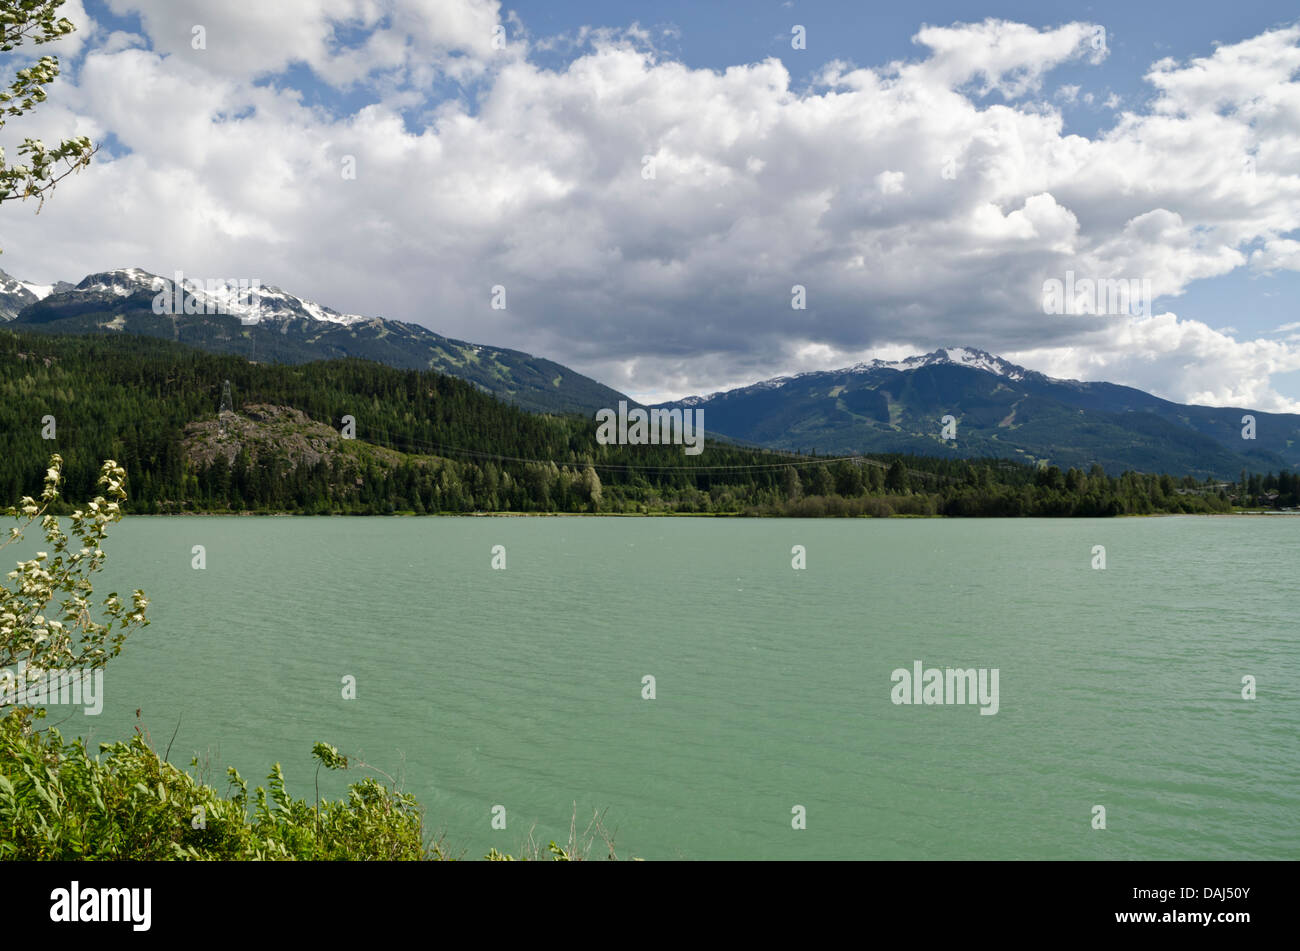 Green Lake in Whistler, British Columbia.  Whistler and Blackcomb mountains are in the distance. Stock Photo